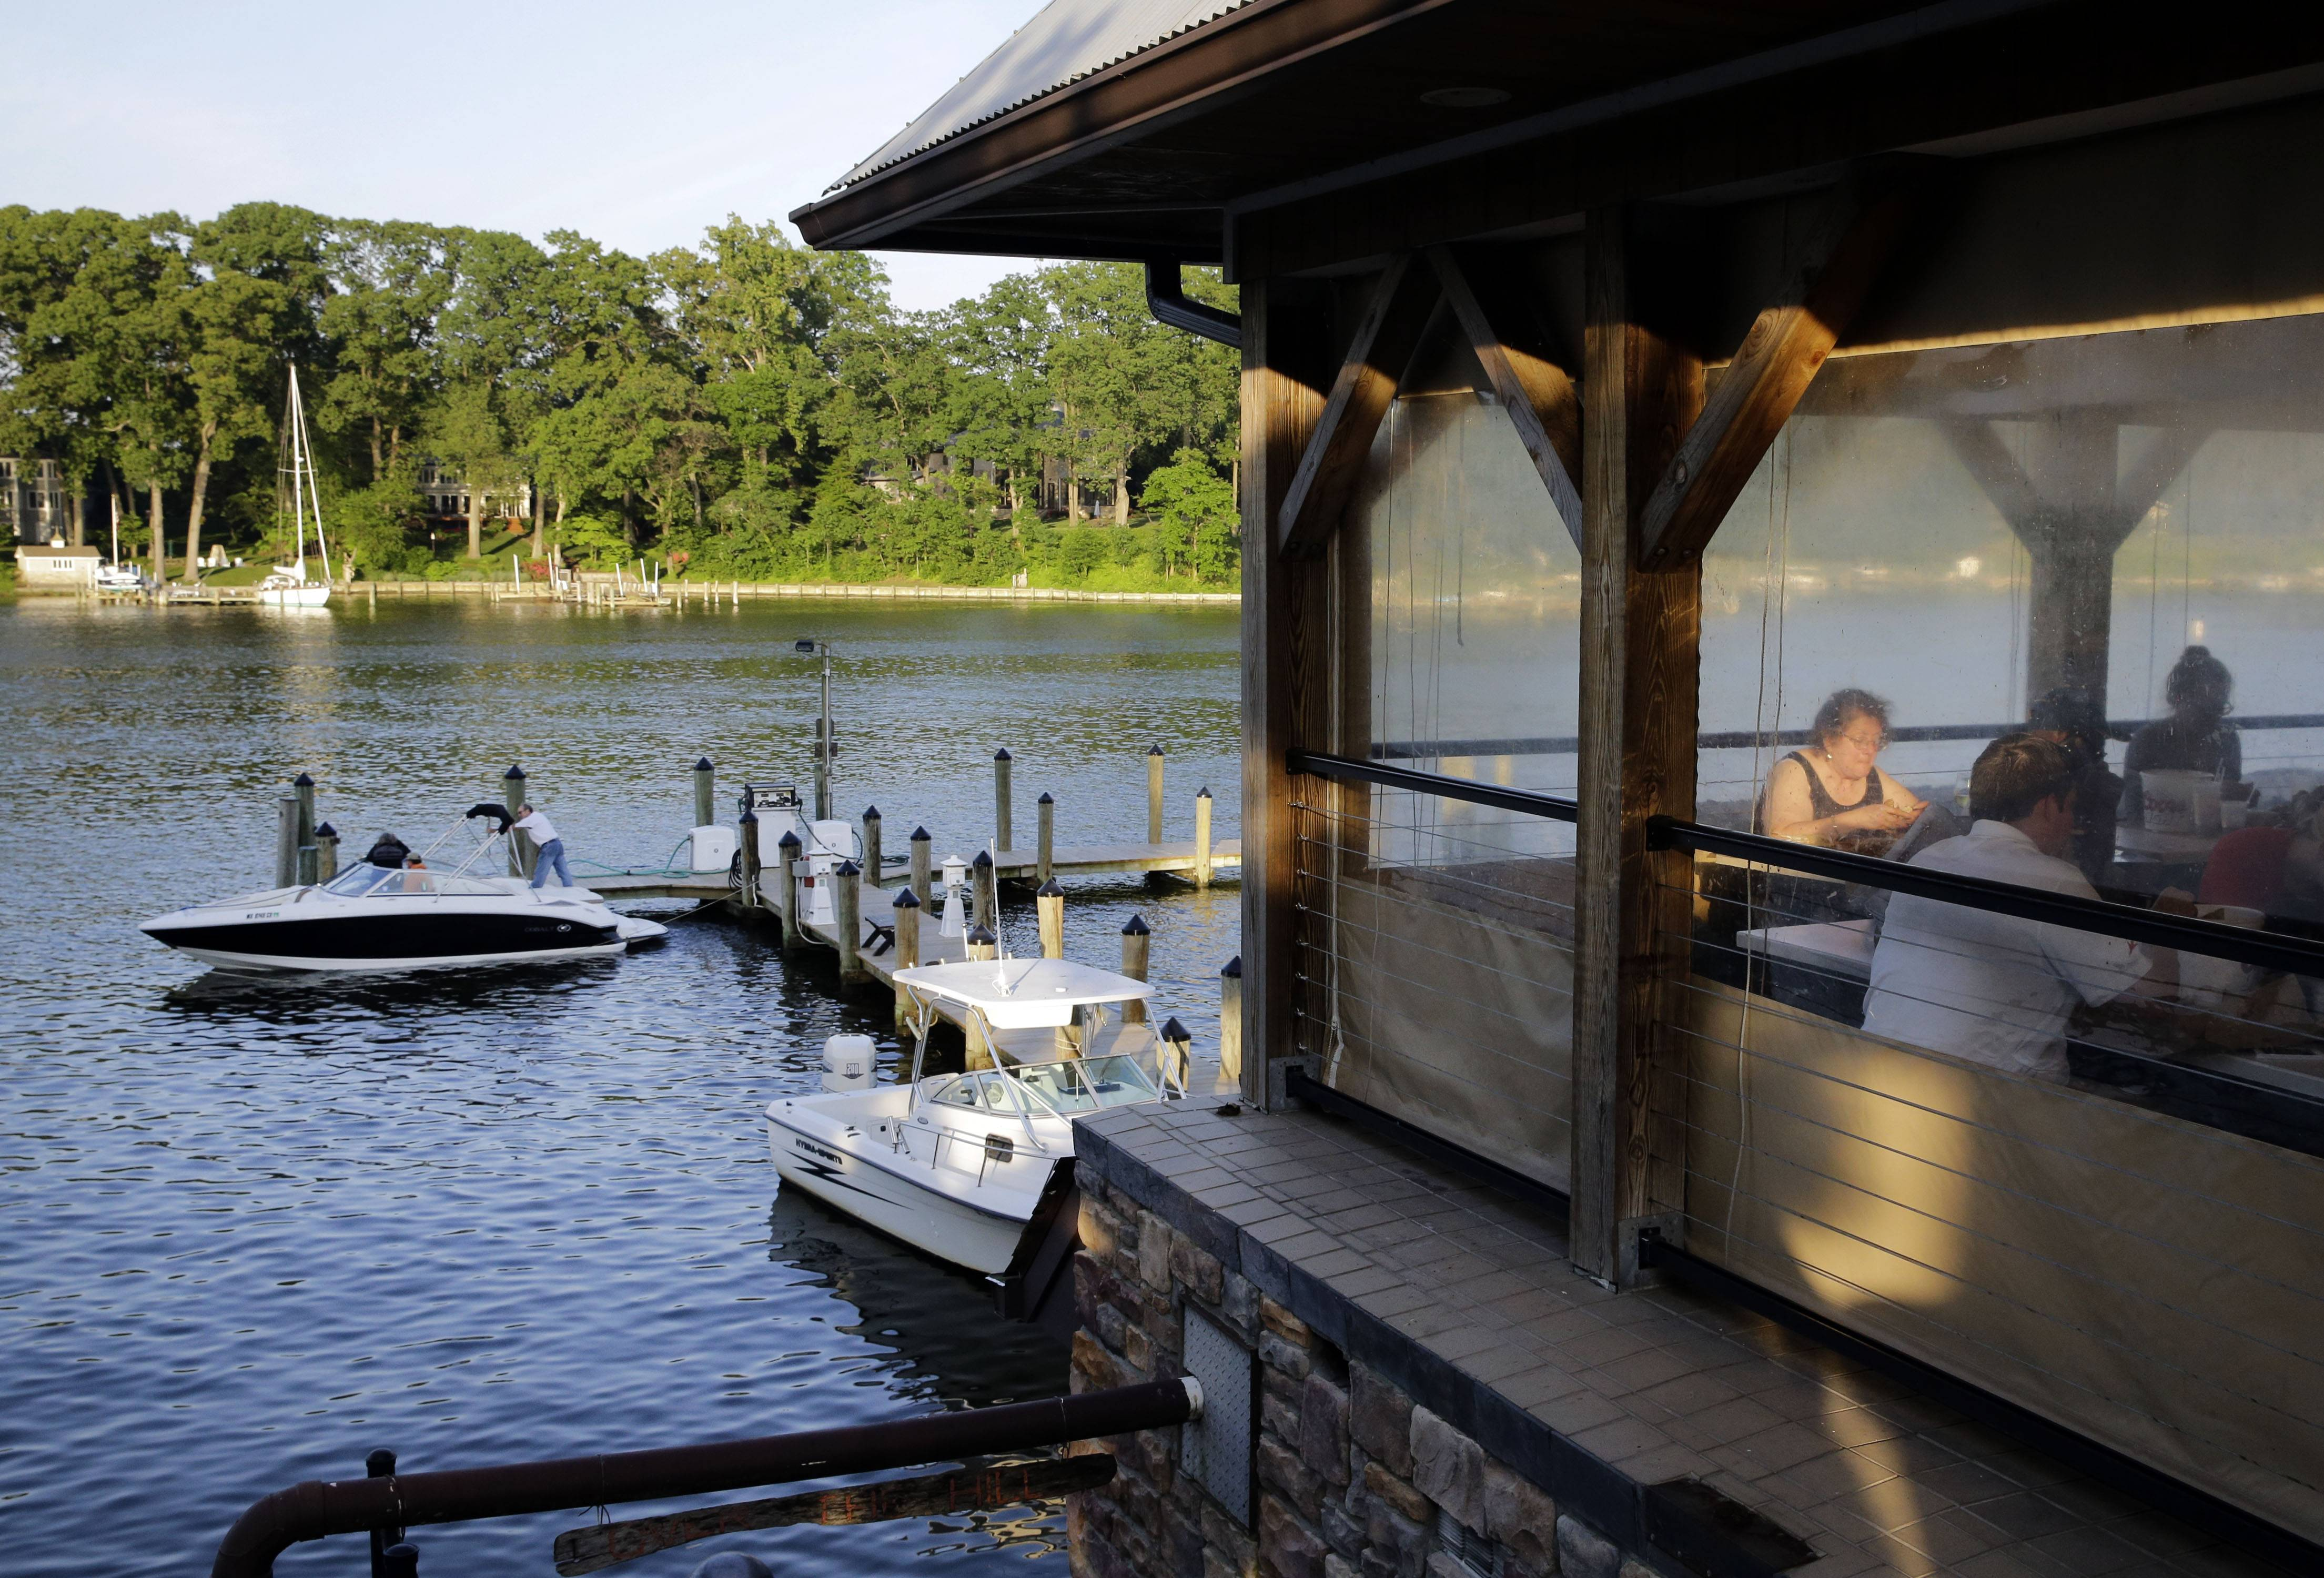 Patrons eat on the deck at Jimmy Cantler's Riverside Inn as diners prepare to untie their boat from the restaurant's dock.